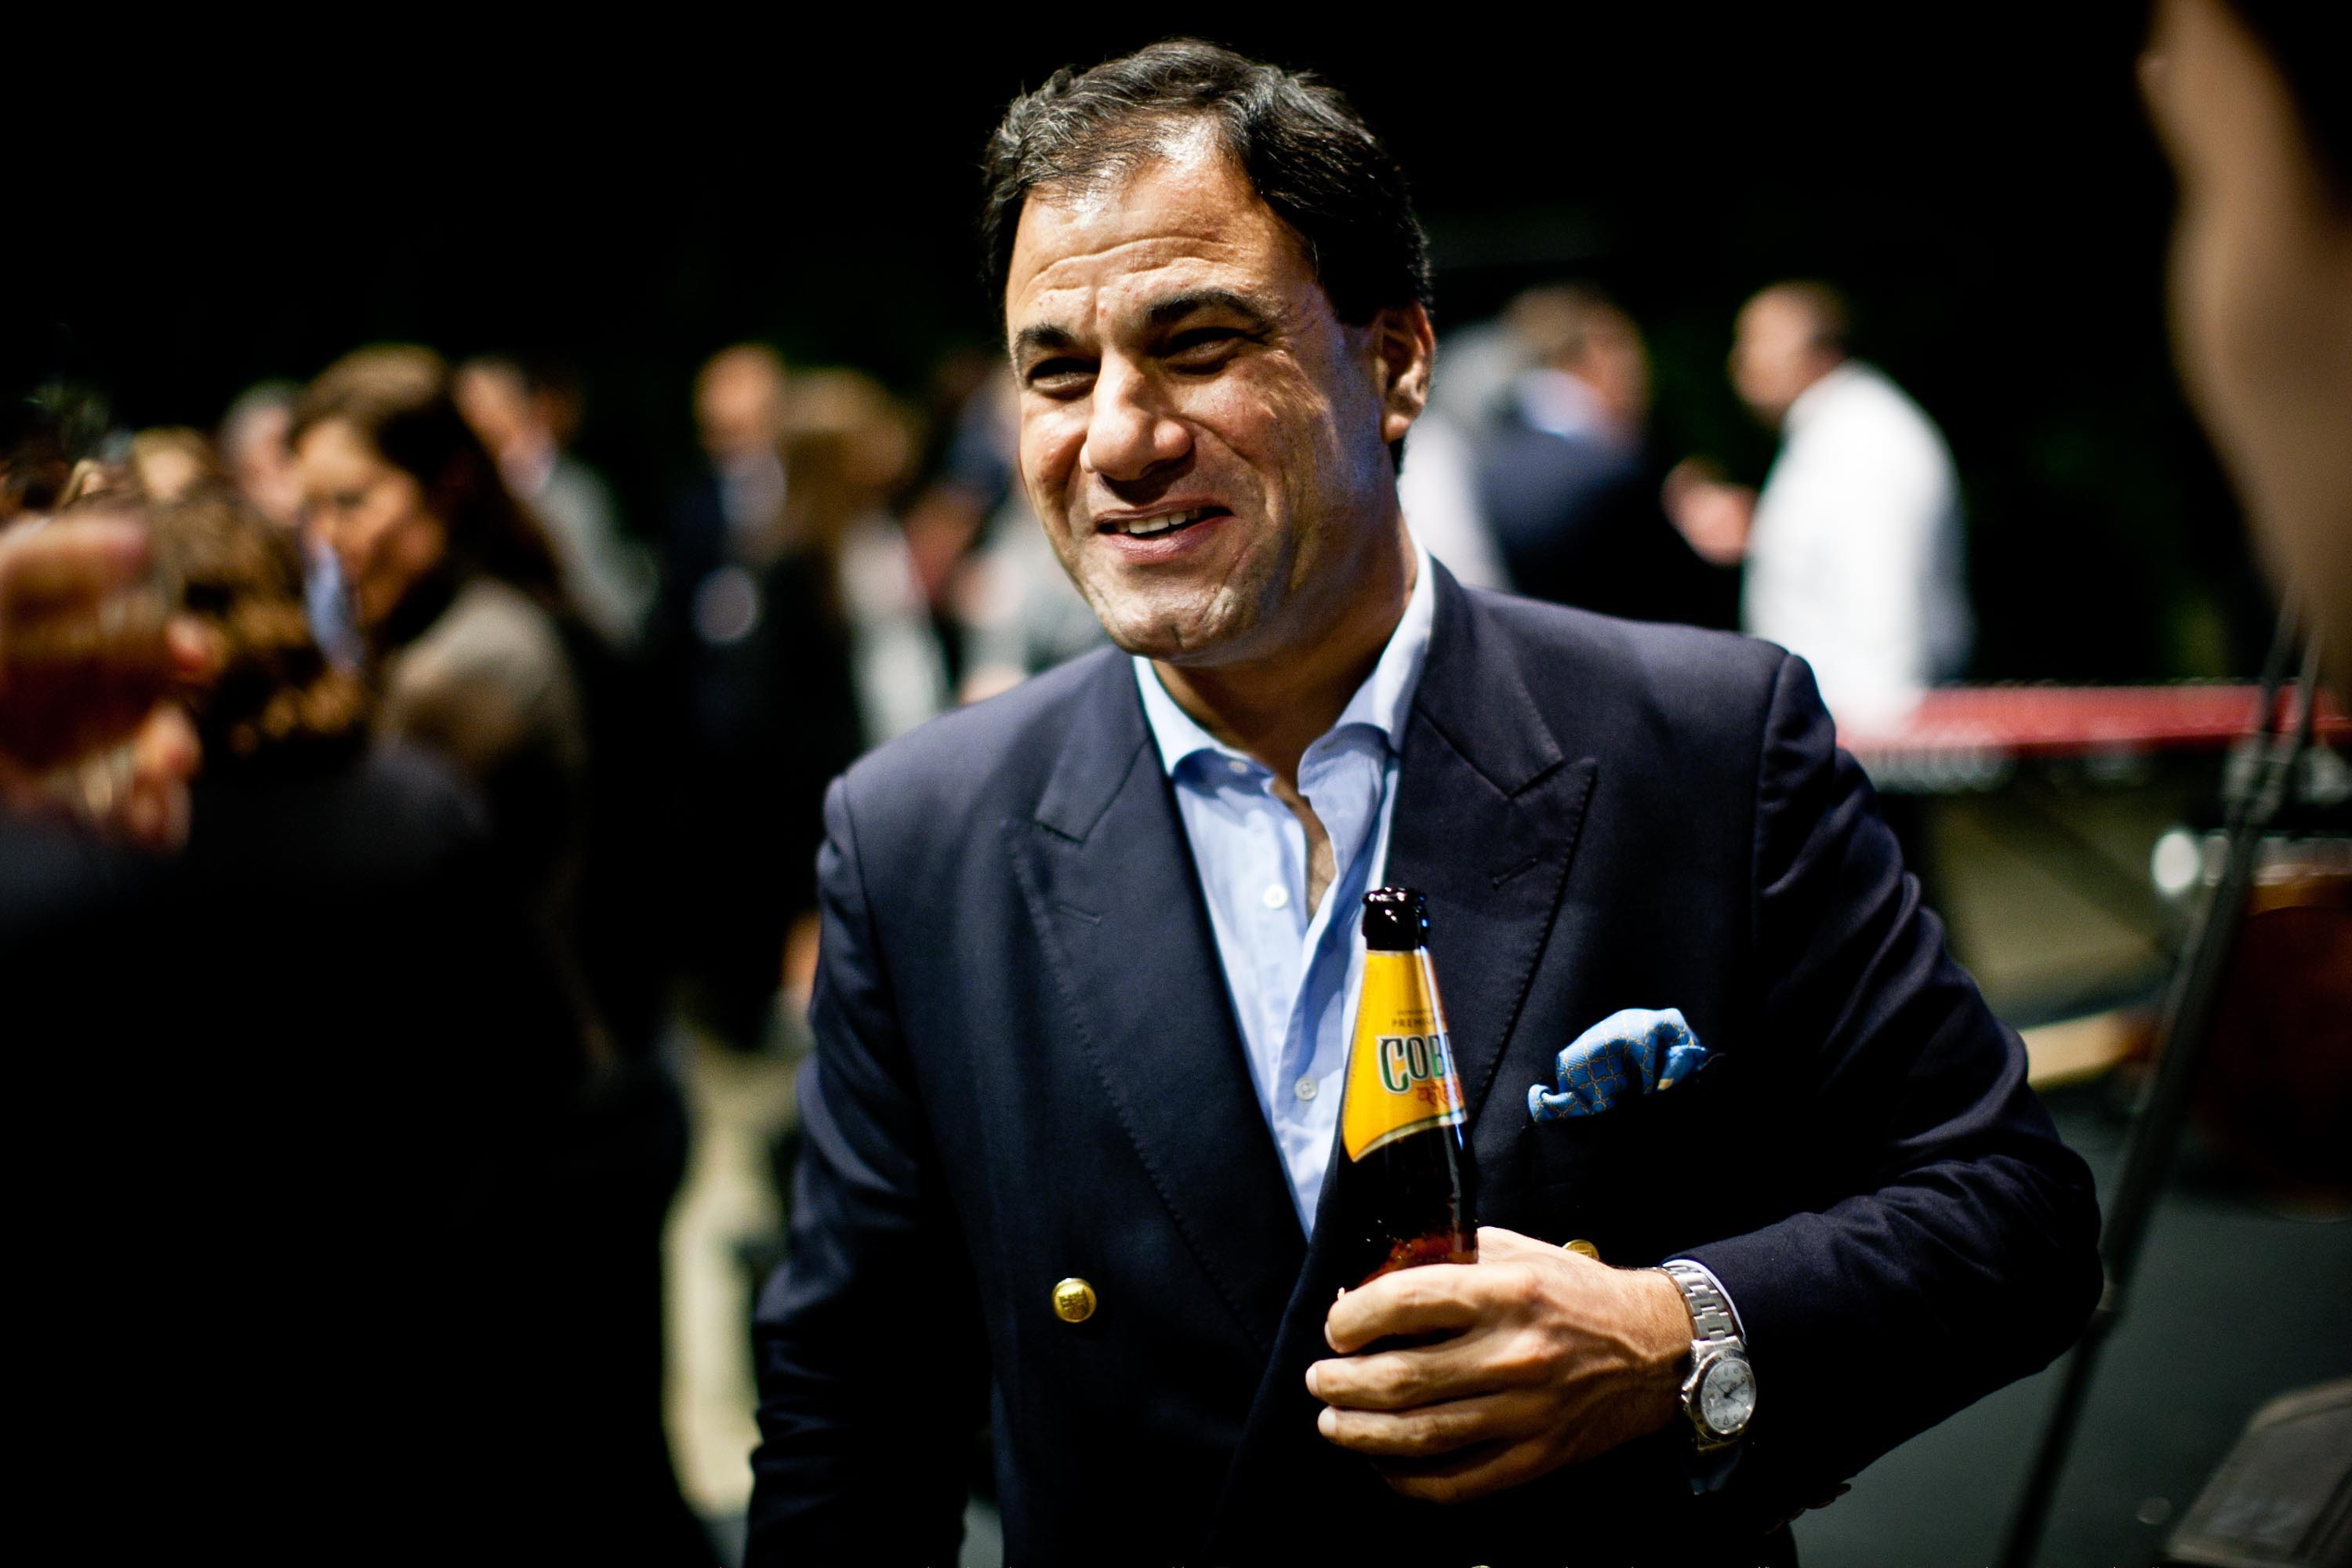 CIPR International presents: Lord Bilimoria, Founder of Cobra Beer and the UK India Business Council, is to give this year's prestigious Maggie Nally Memorial Lecture in Parliament (London) on 27 April 2016 at 6pm.